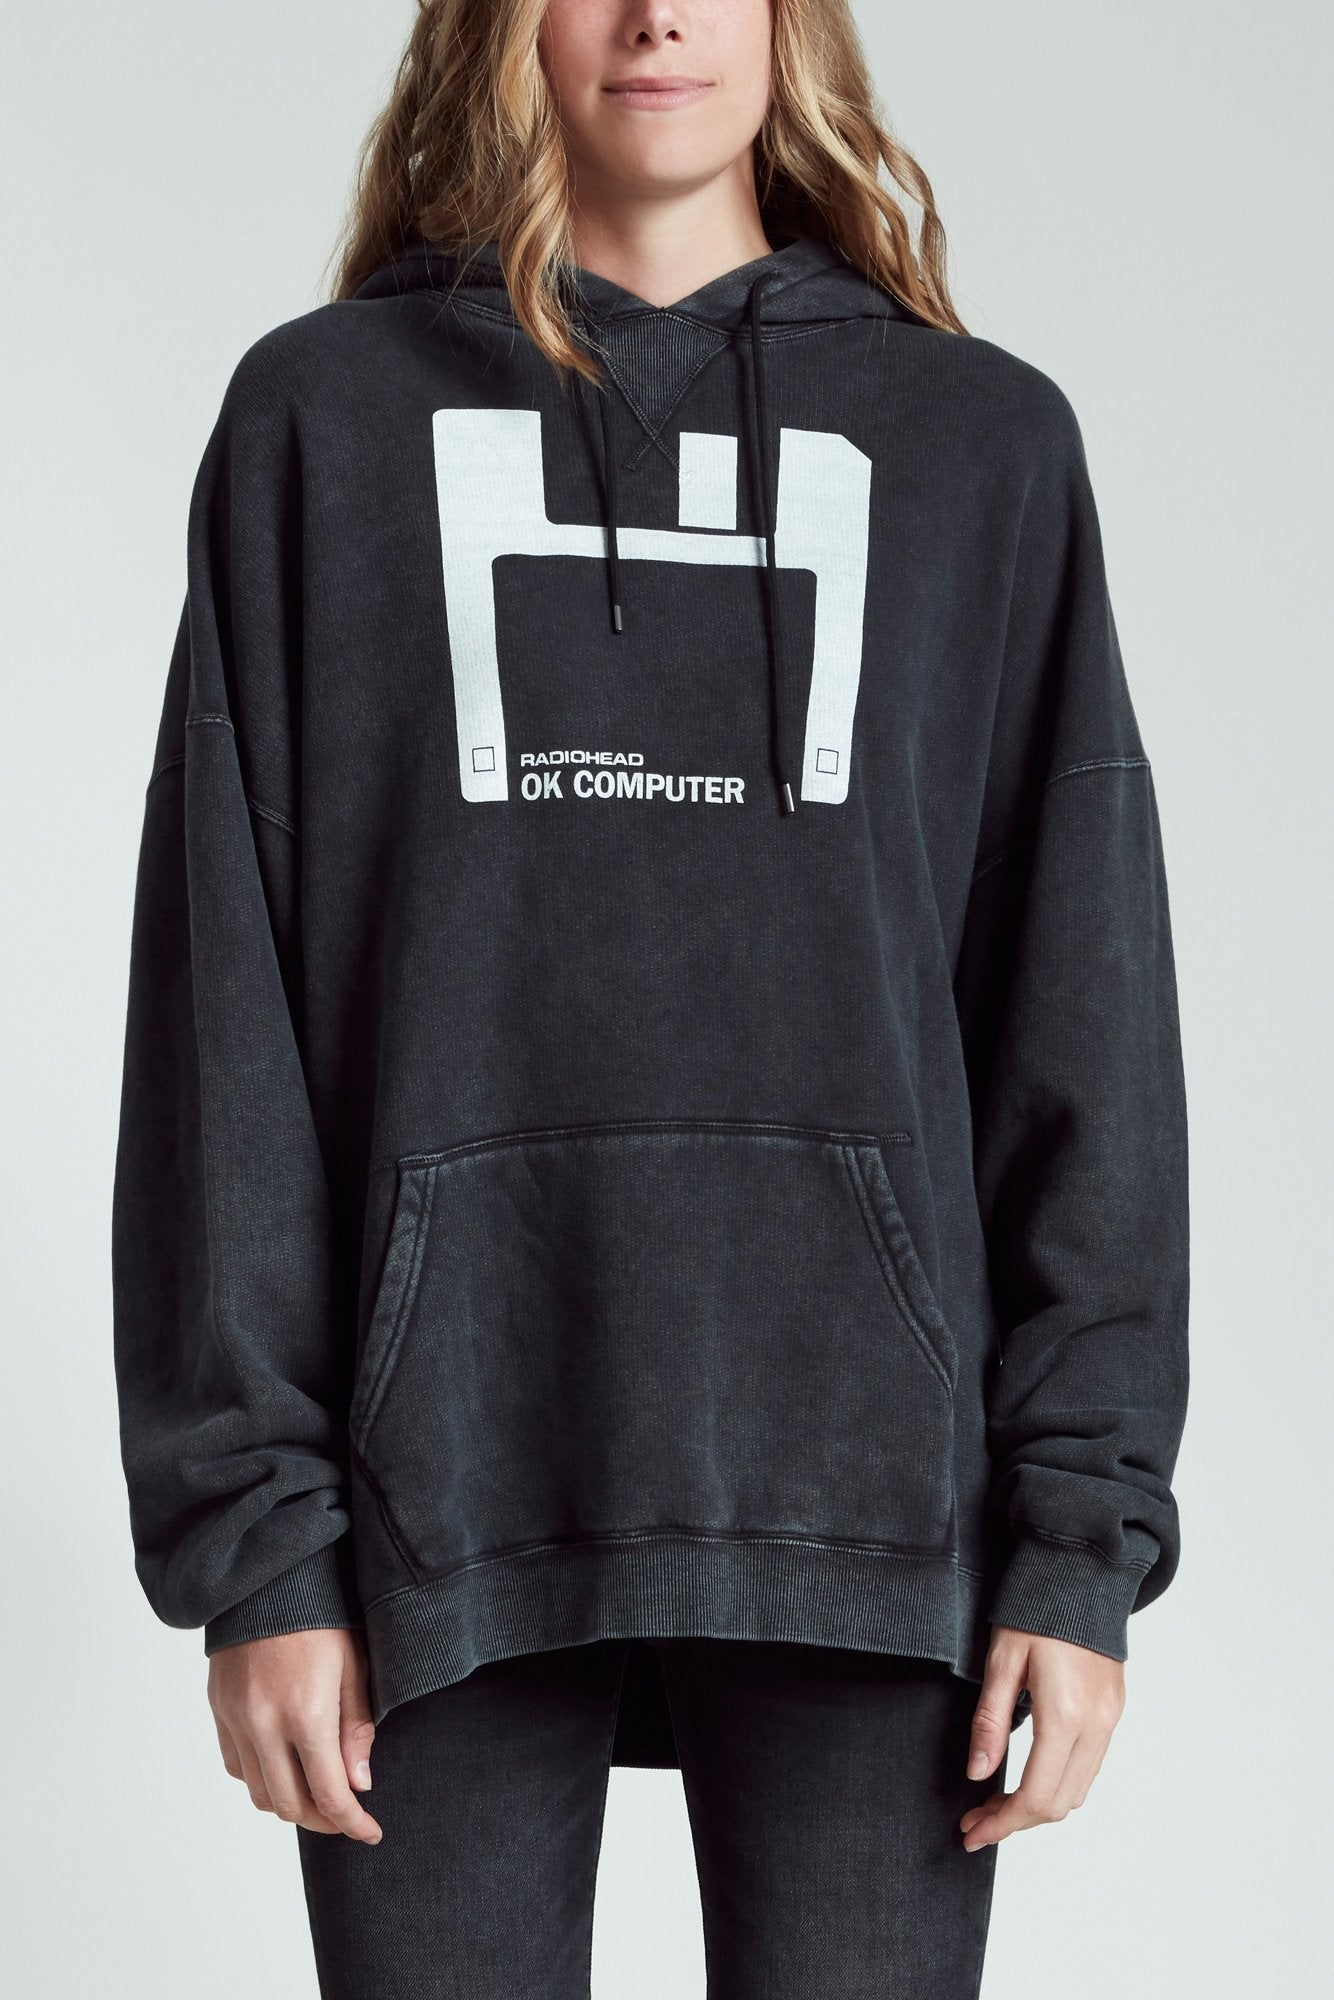 Floppy Disk Oversized Hoodie - Acid Black